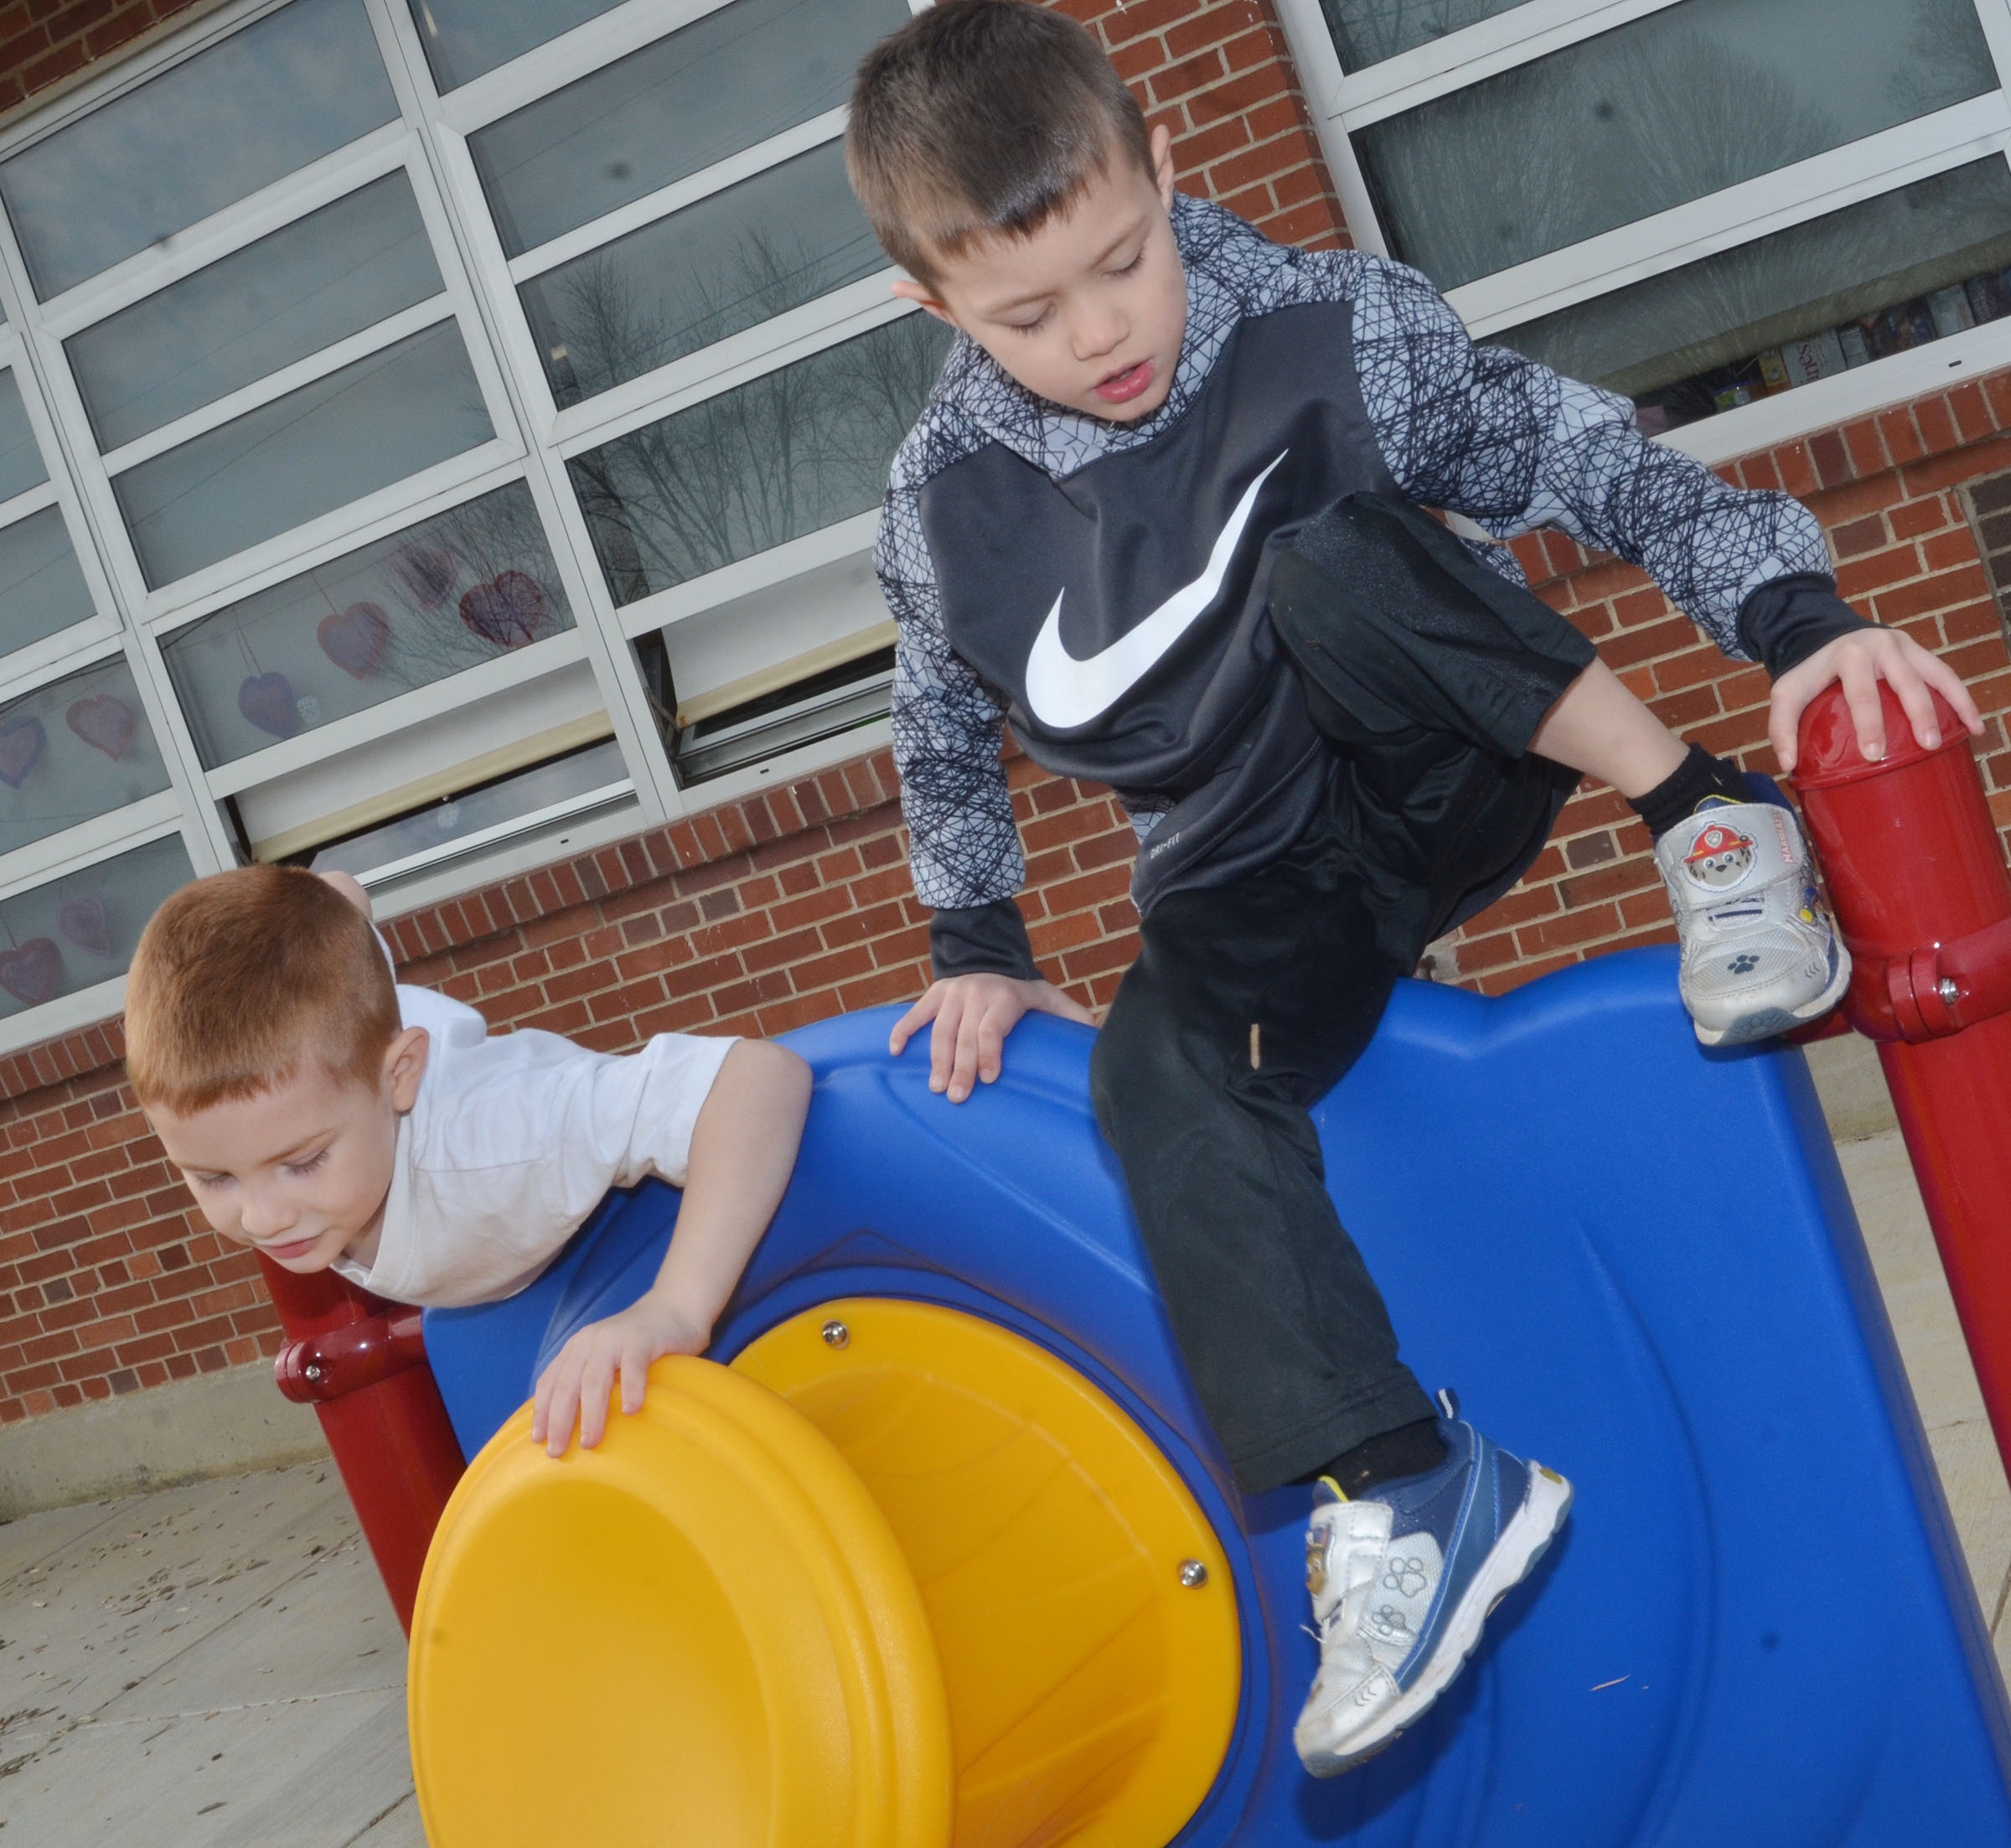 CES preschool students Kennon Dotson, at left, and Levi Ritchie climb high.